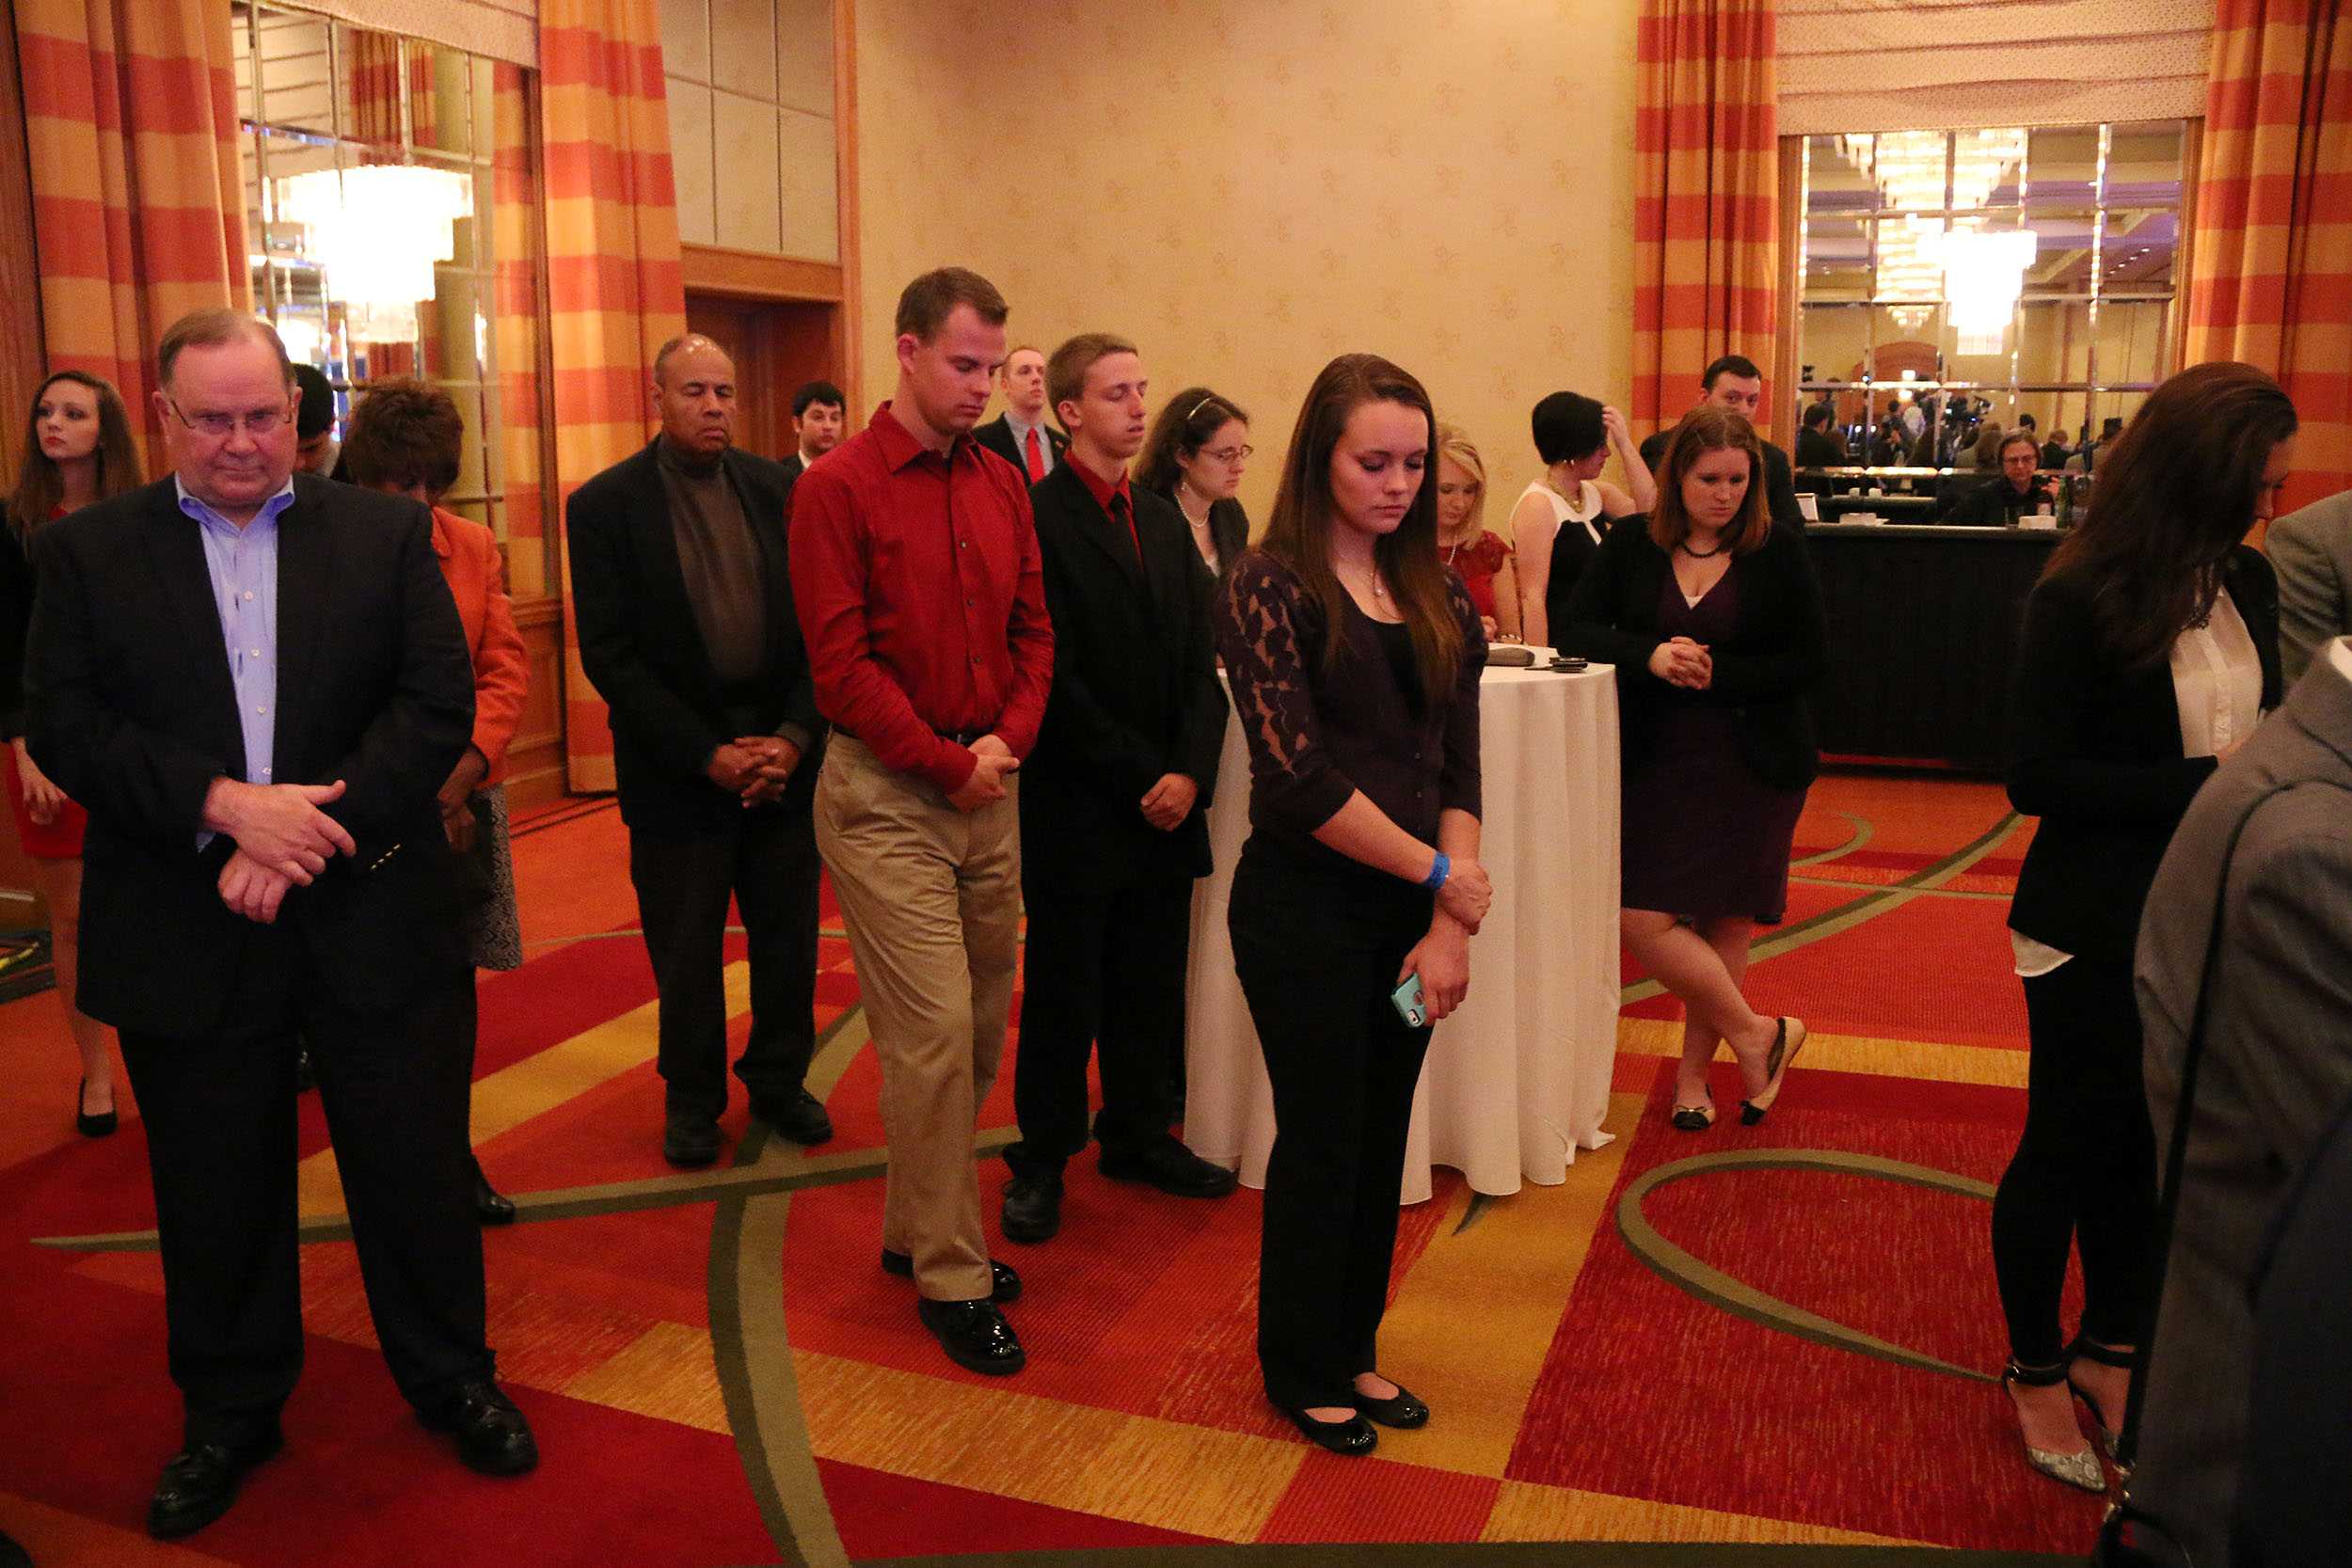 Guests stand and pray at the election night party of the Franklin County Republican party in the Renaissance Hotel in Columbus, Ohio, Tuesday, Nov. 2014.